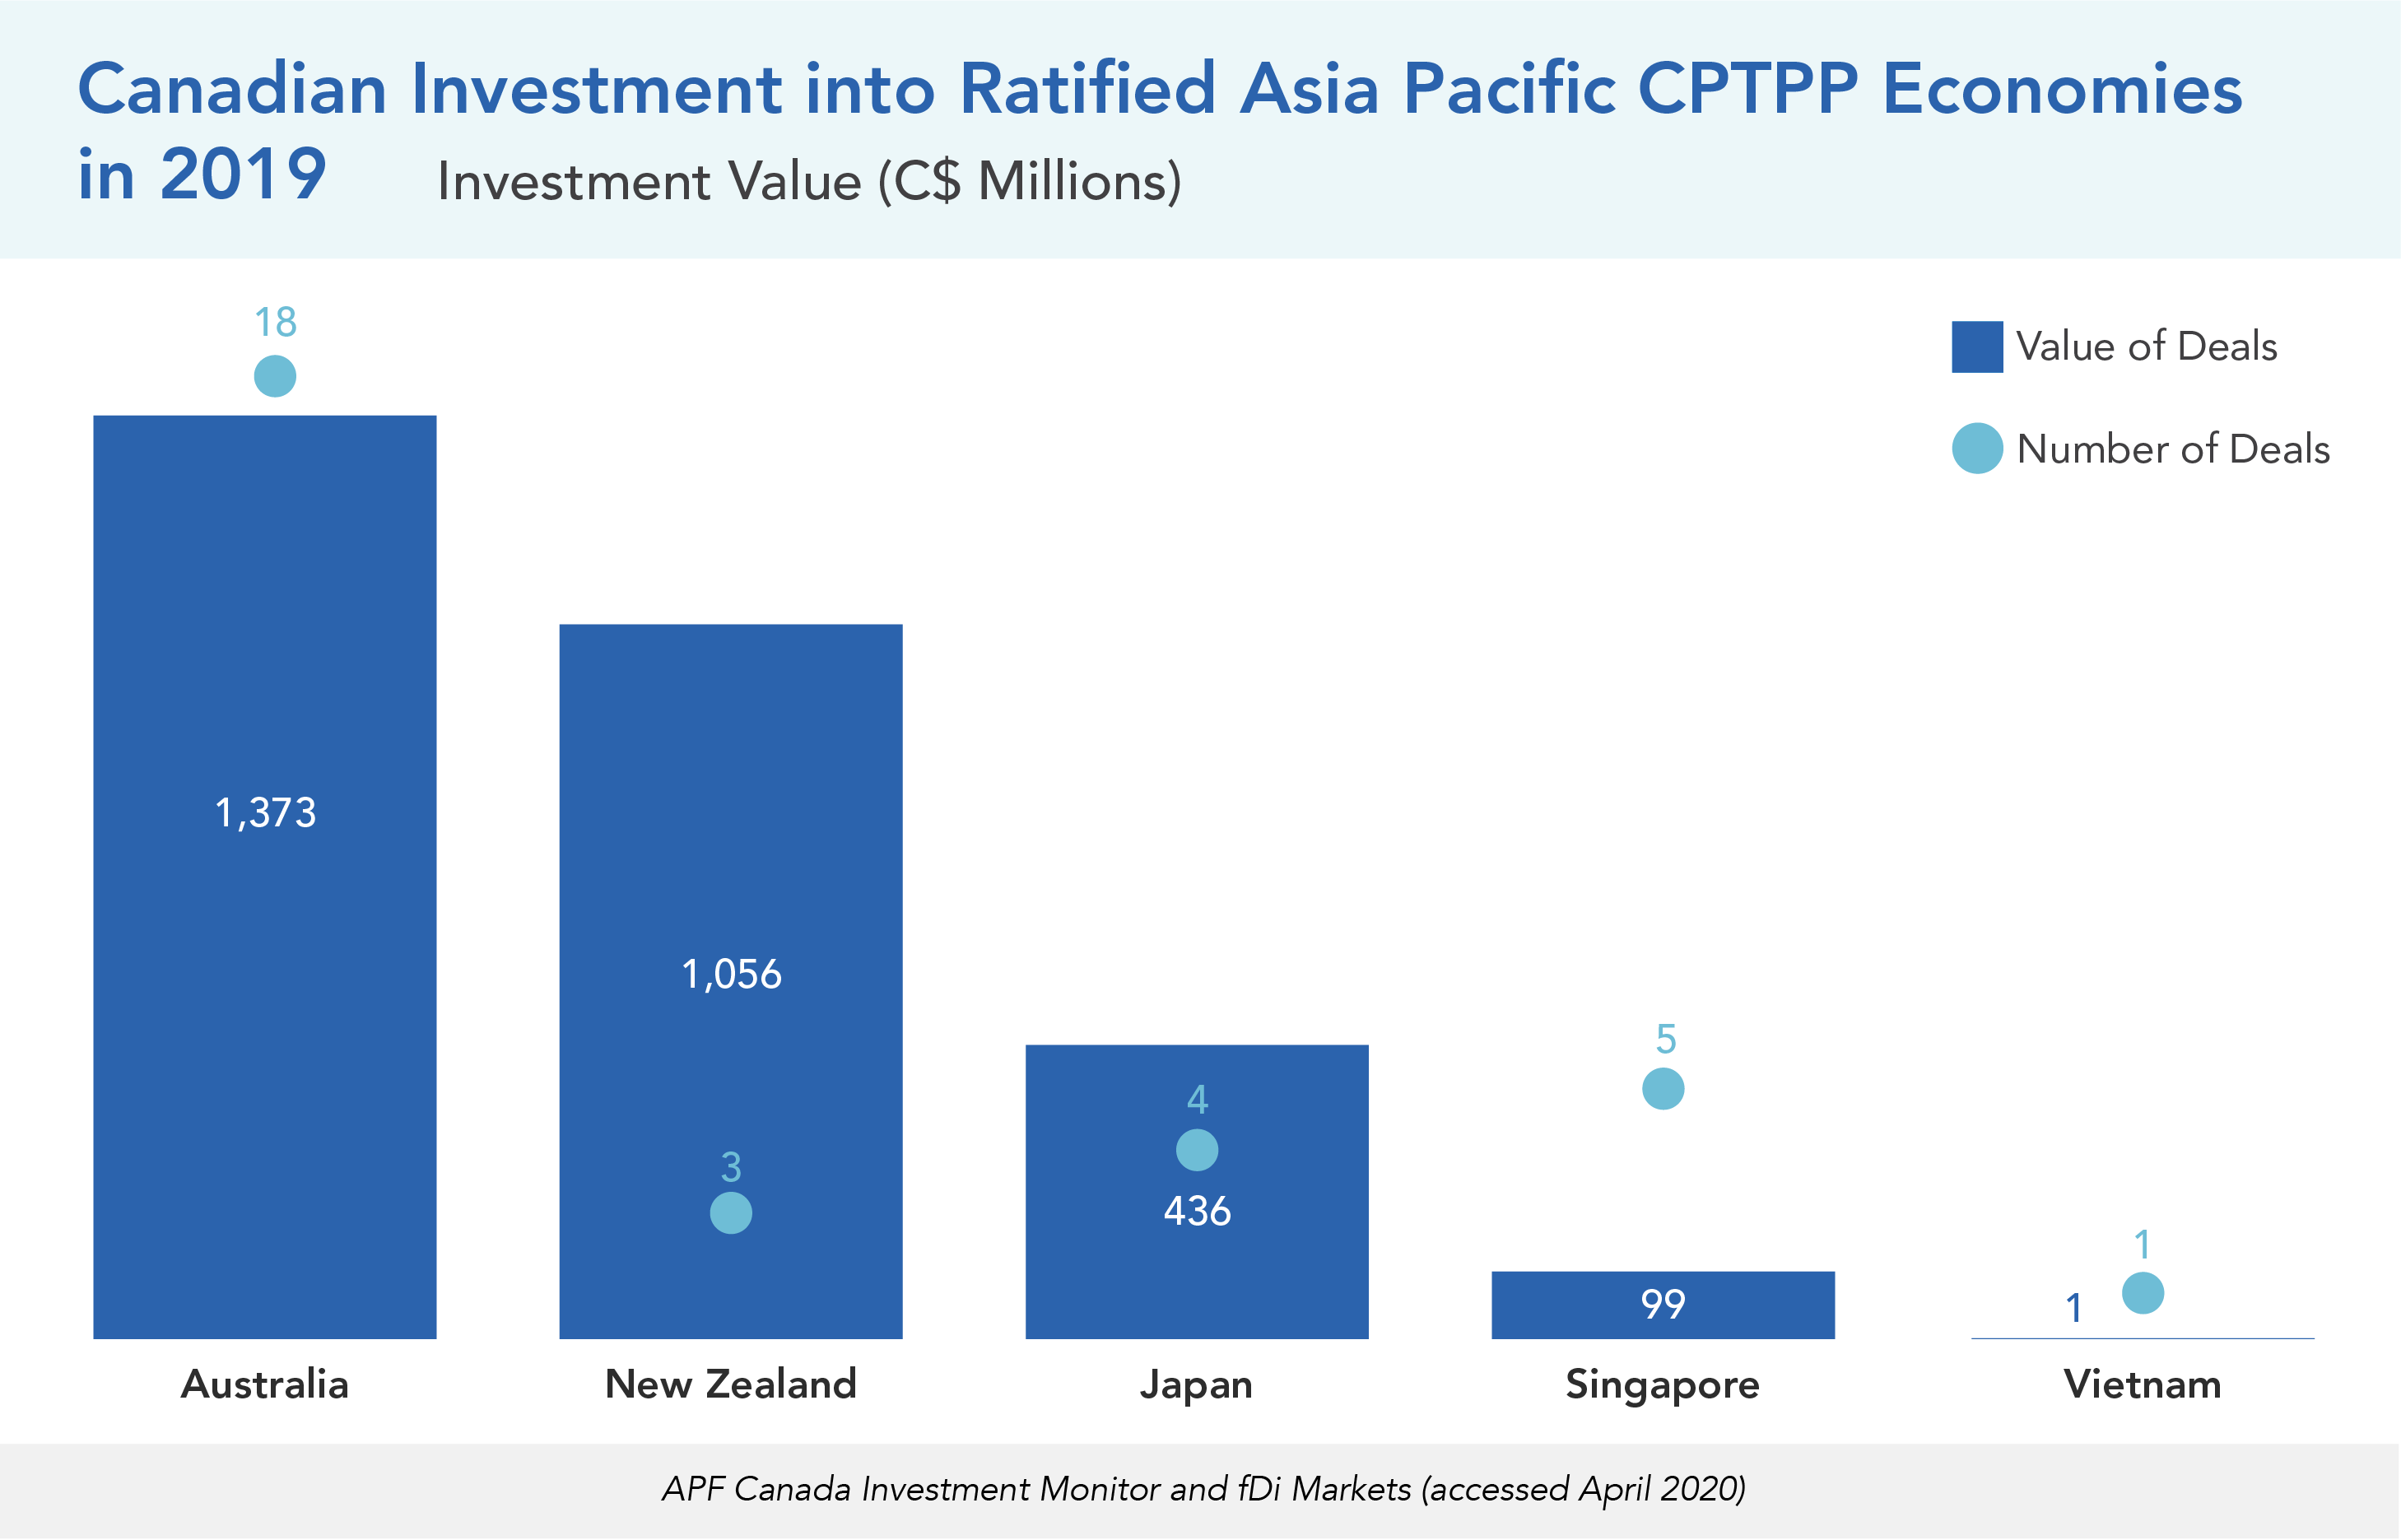 Canadian Investment into Ratified Asia Pacific CPTPP Economies in 2019